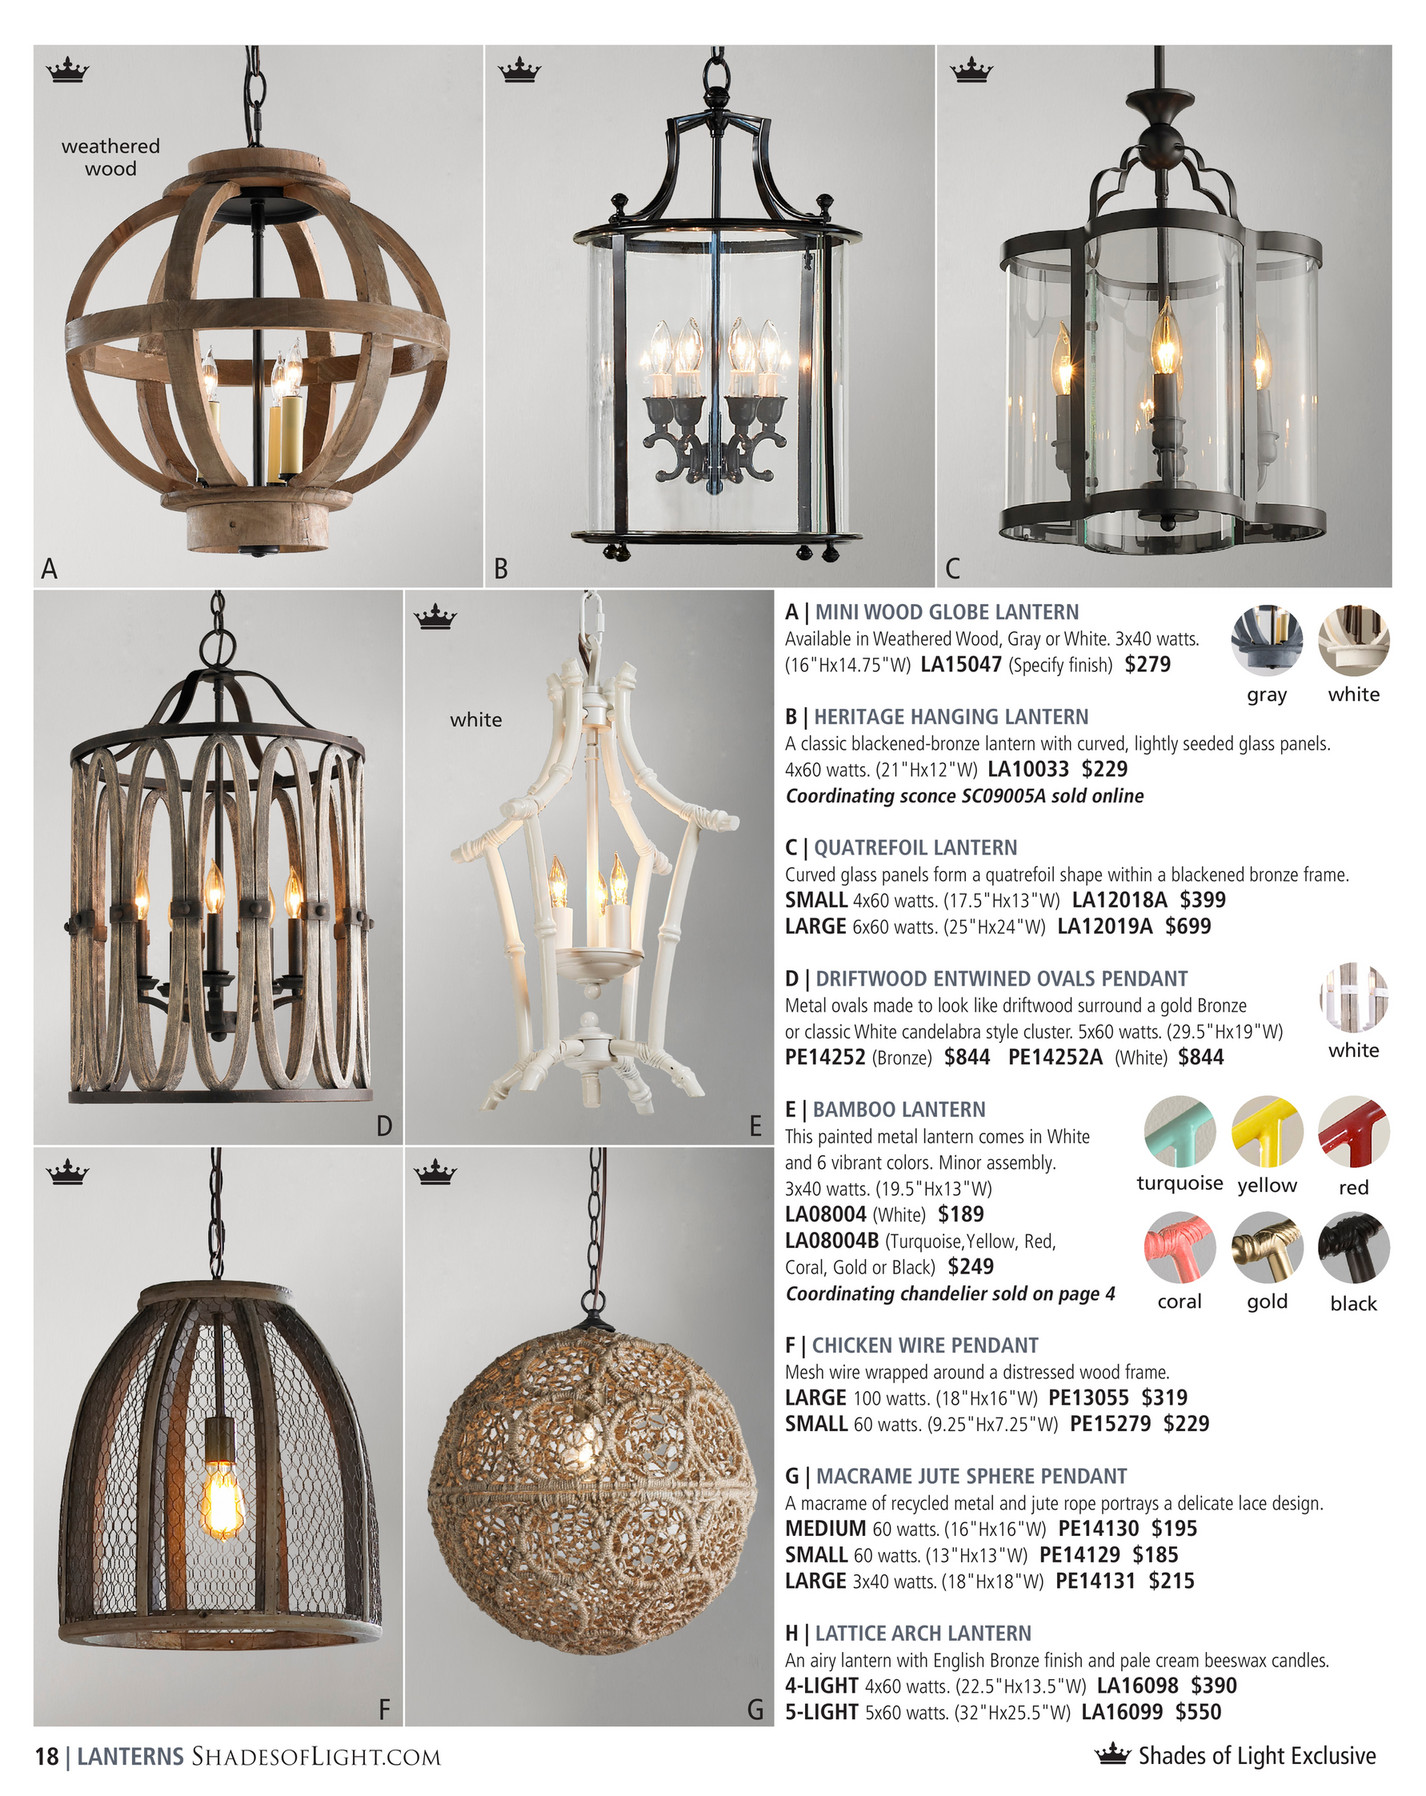 Shades of Light - Upscale Traditional 2018 - Vintage Modern Crystal ...